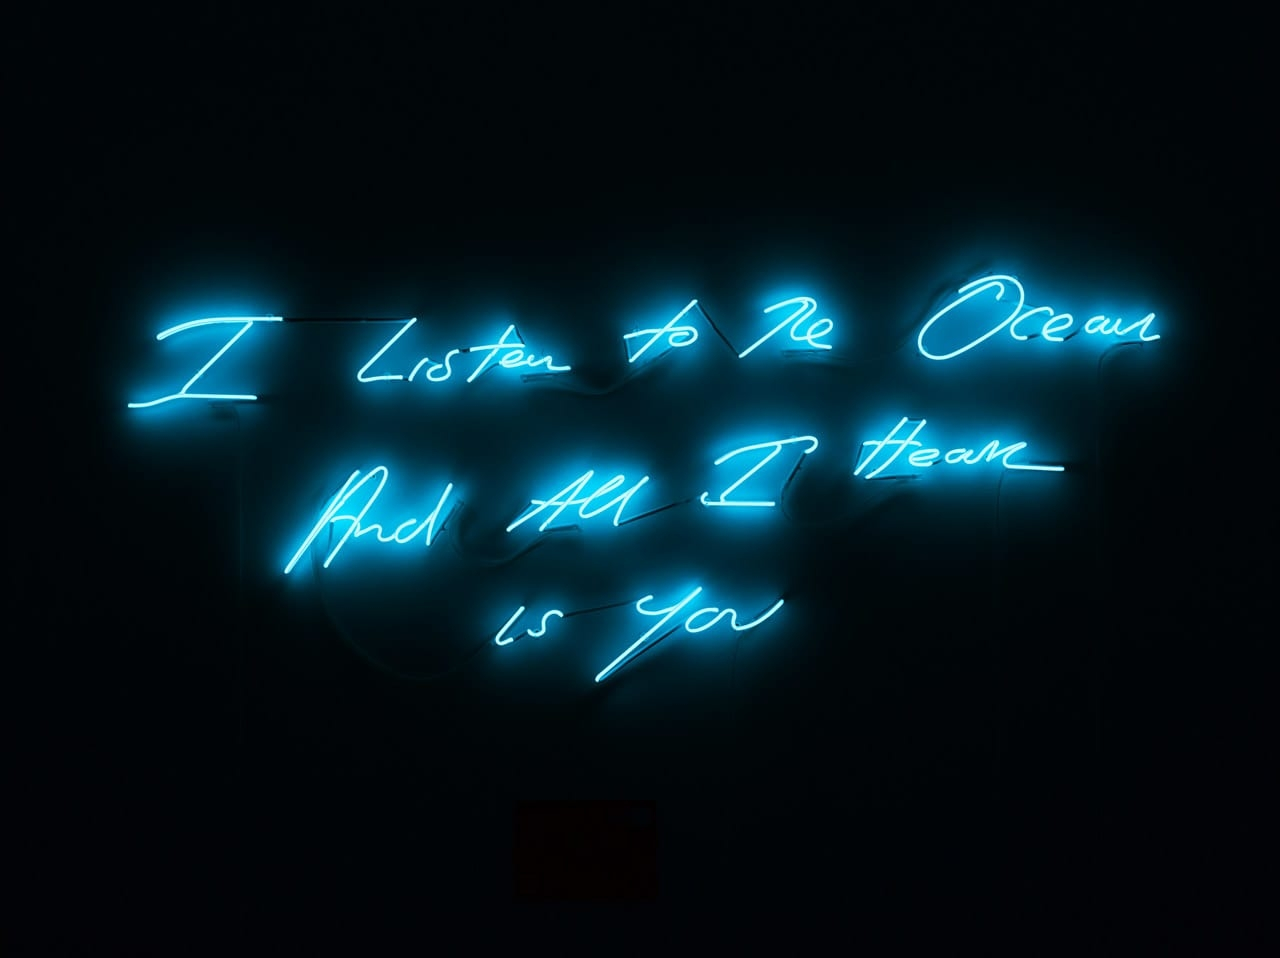 Tracey Emin, I Listen To The Ocean And All I Hear Is You, 2011, Digital Limited Edition. © Tracey Emin. Courtesy of www.seditionart.com